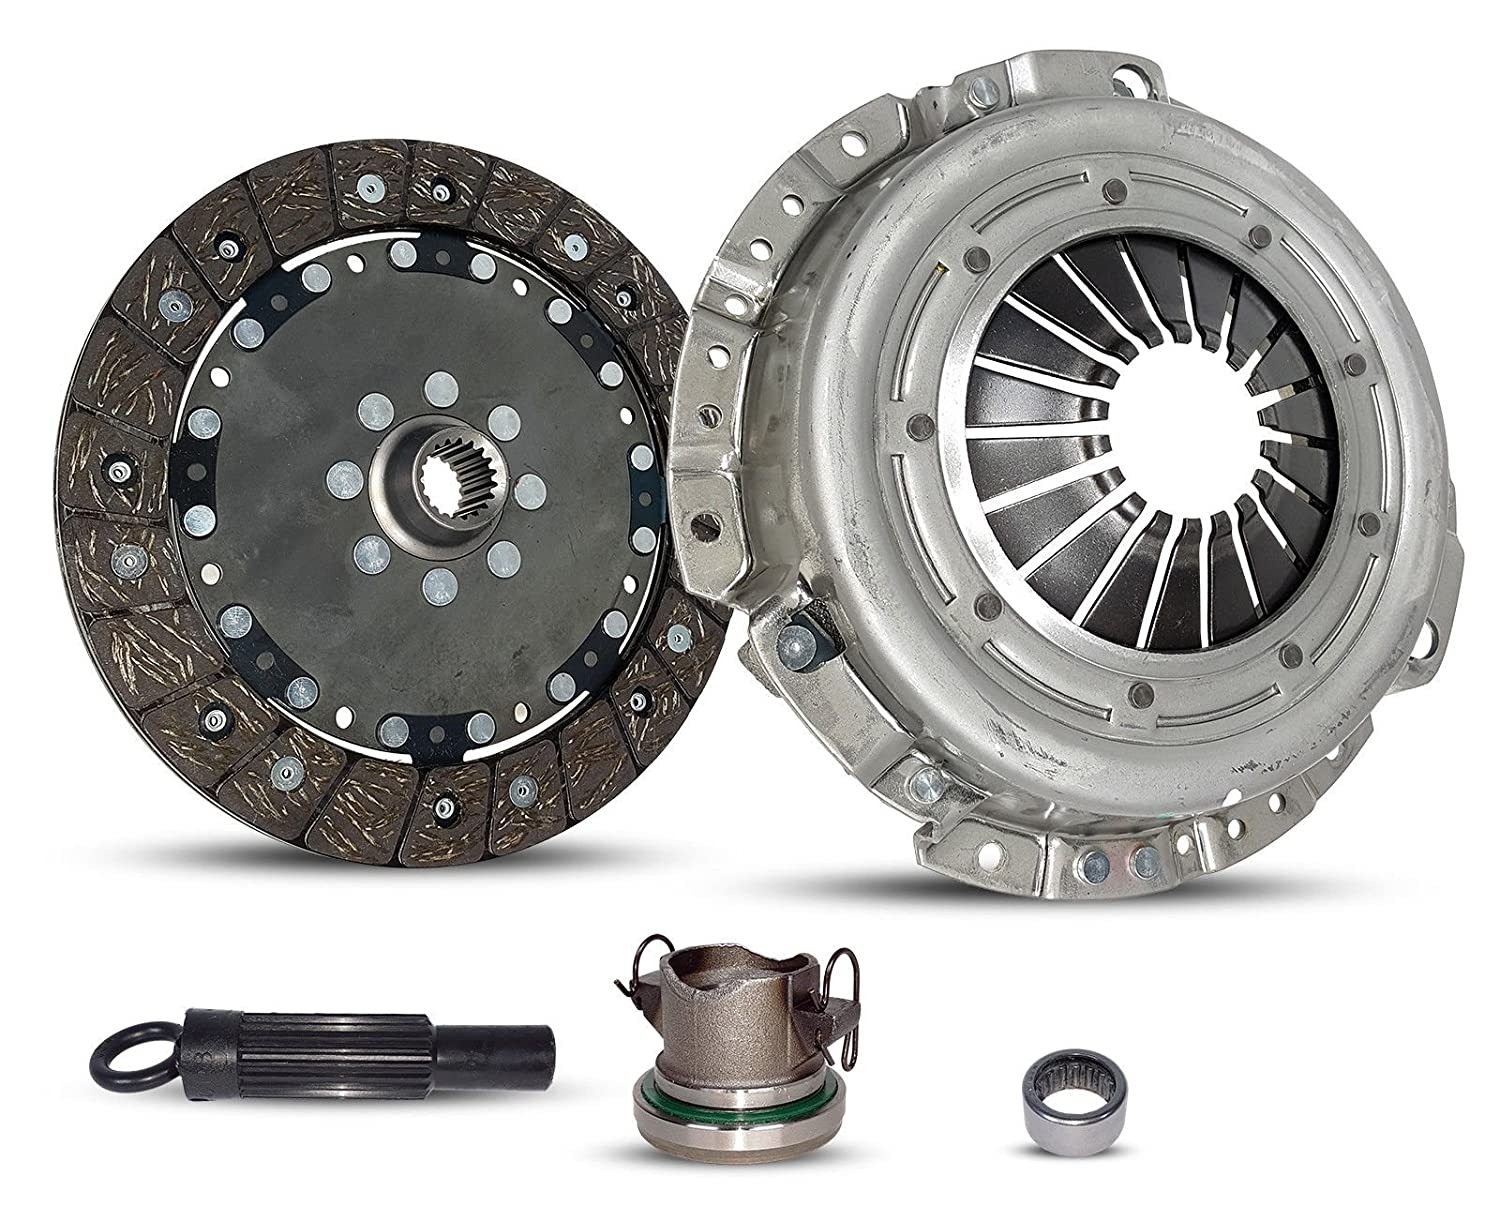 Clutch Kit Works With Jeep Liberty Sport Renegade Sport Utility 4-Door 2002-2004 2.4L L4 GAS DOHC Naturally Aspirated